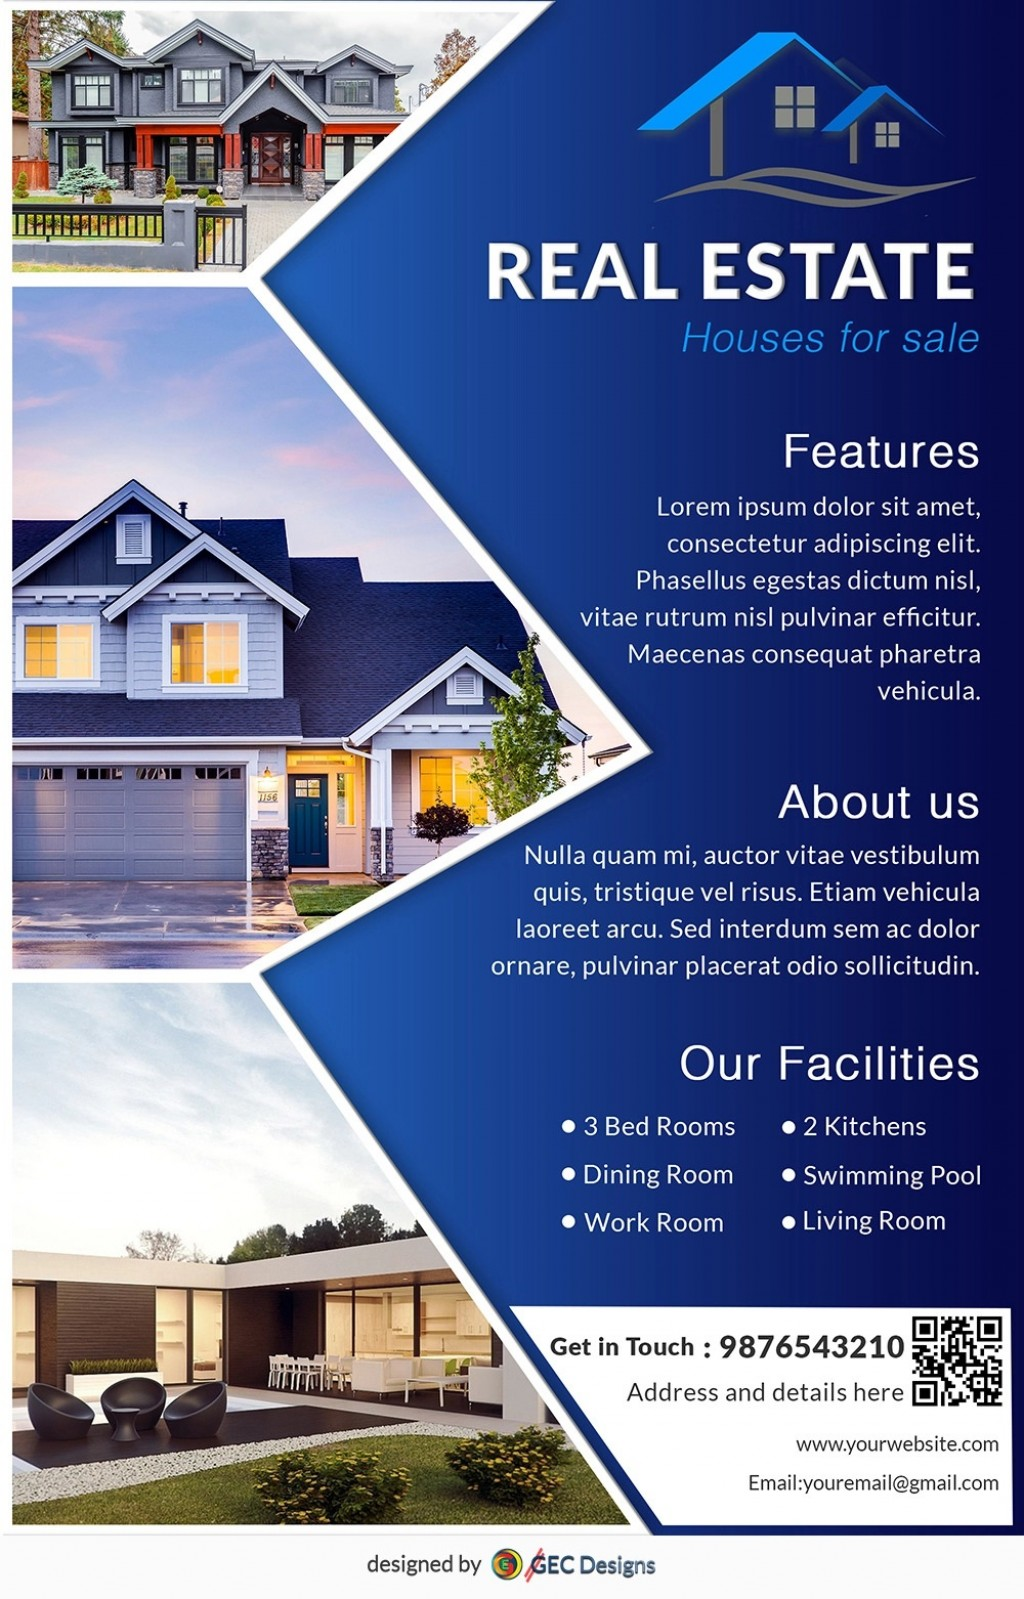 004 Awesome Real Estate Marketing Flyer Template Free High Resolution Large